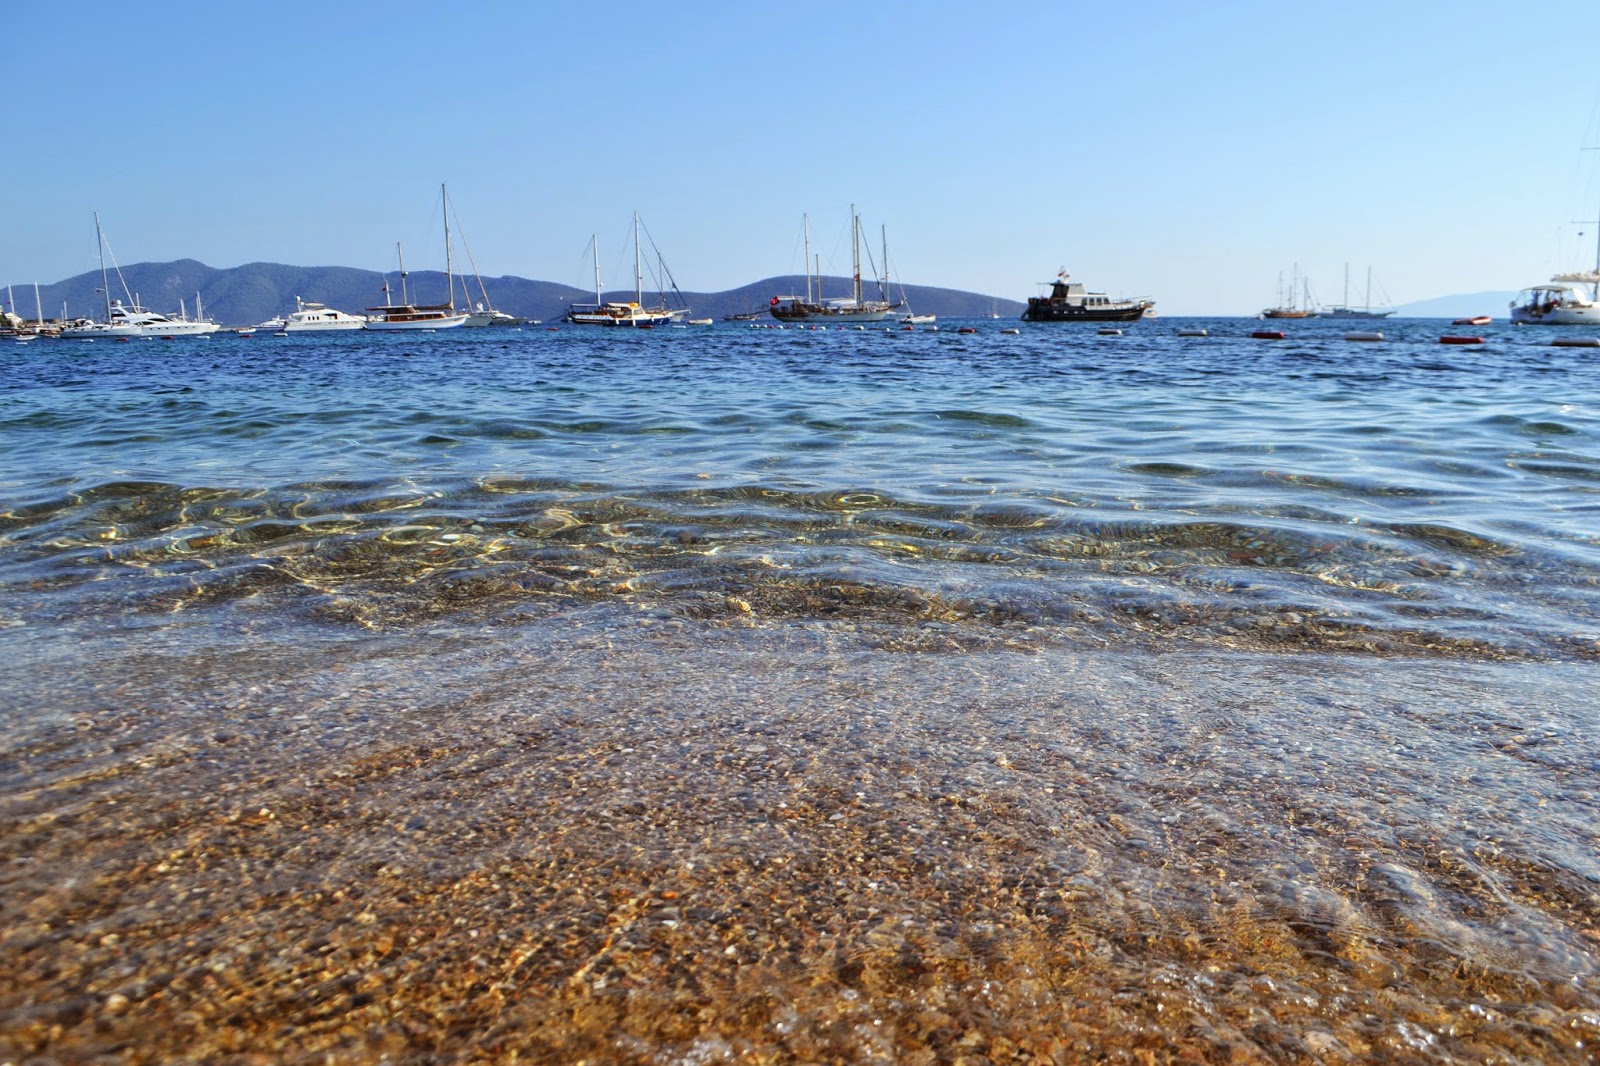 On Bodrum beach looking across to the harbour, boats can be seen in the background